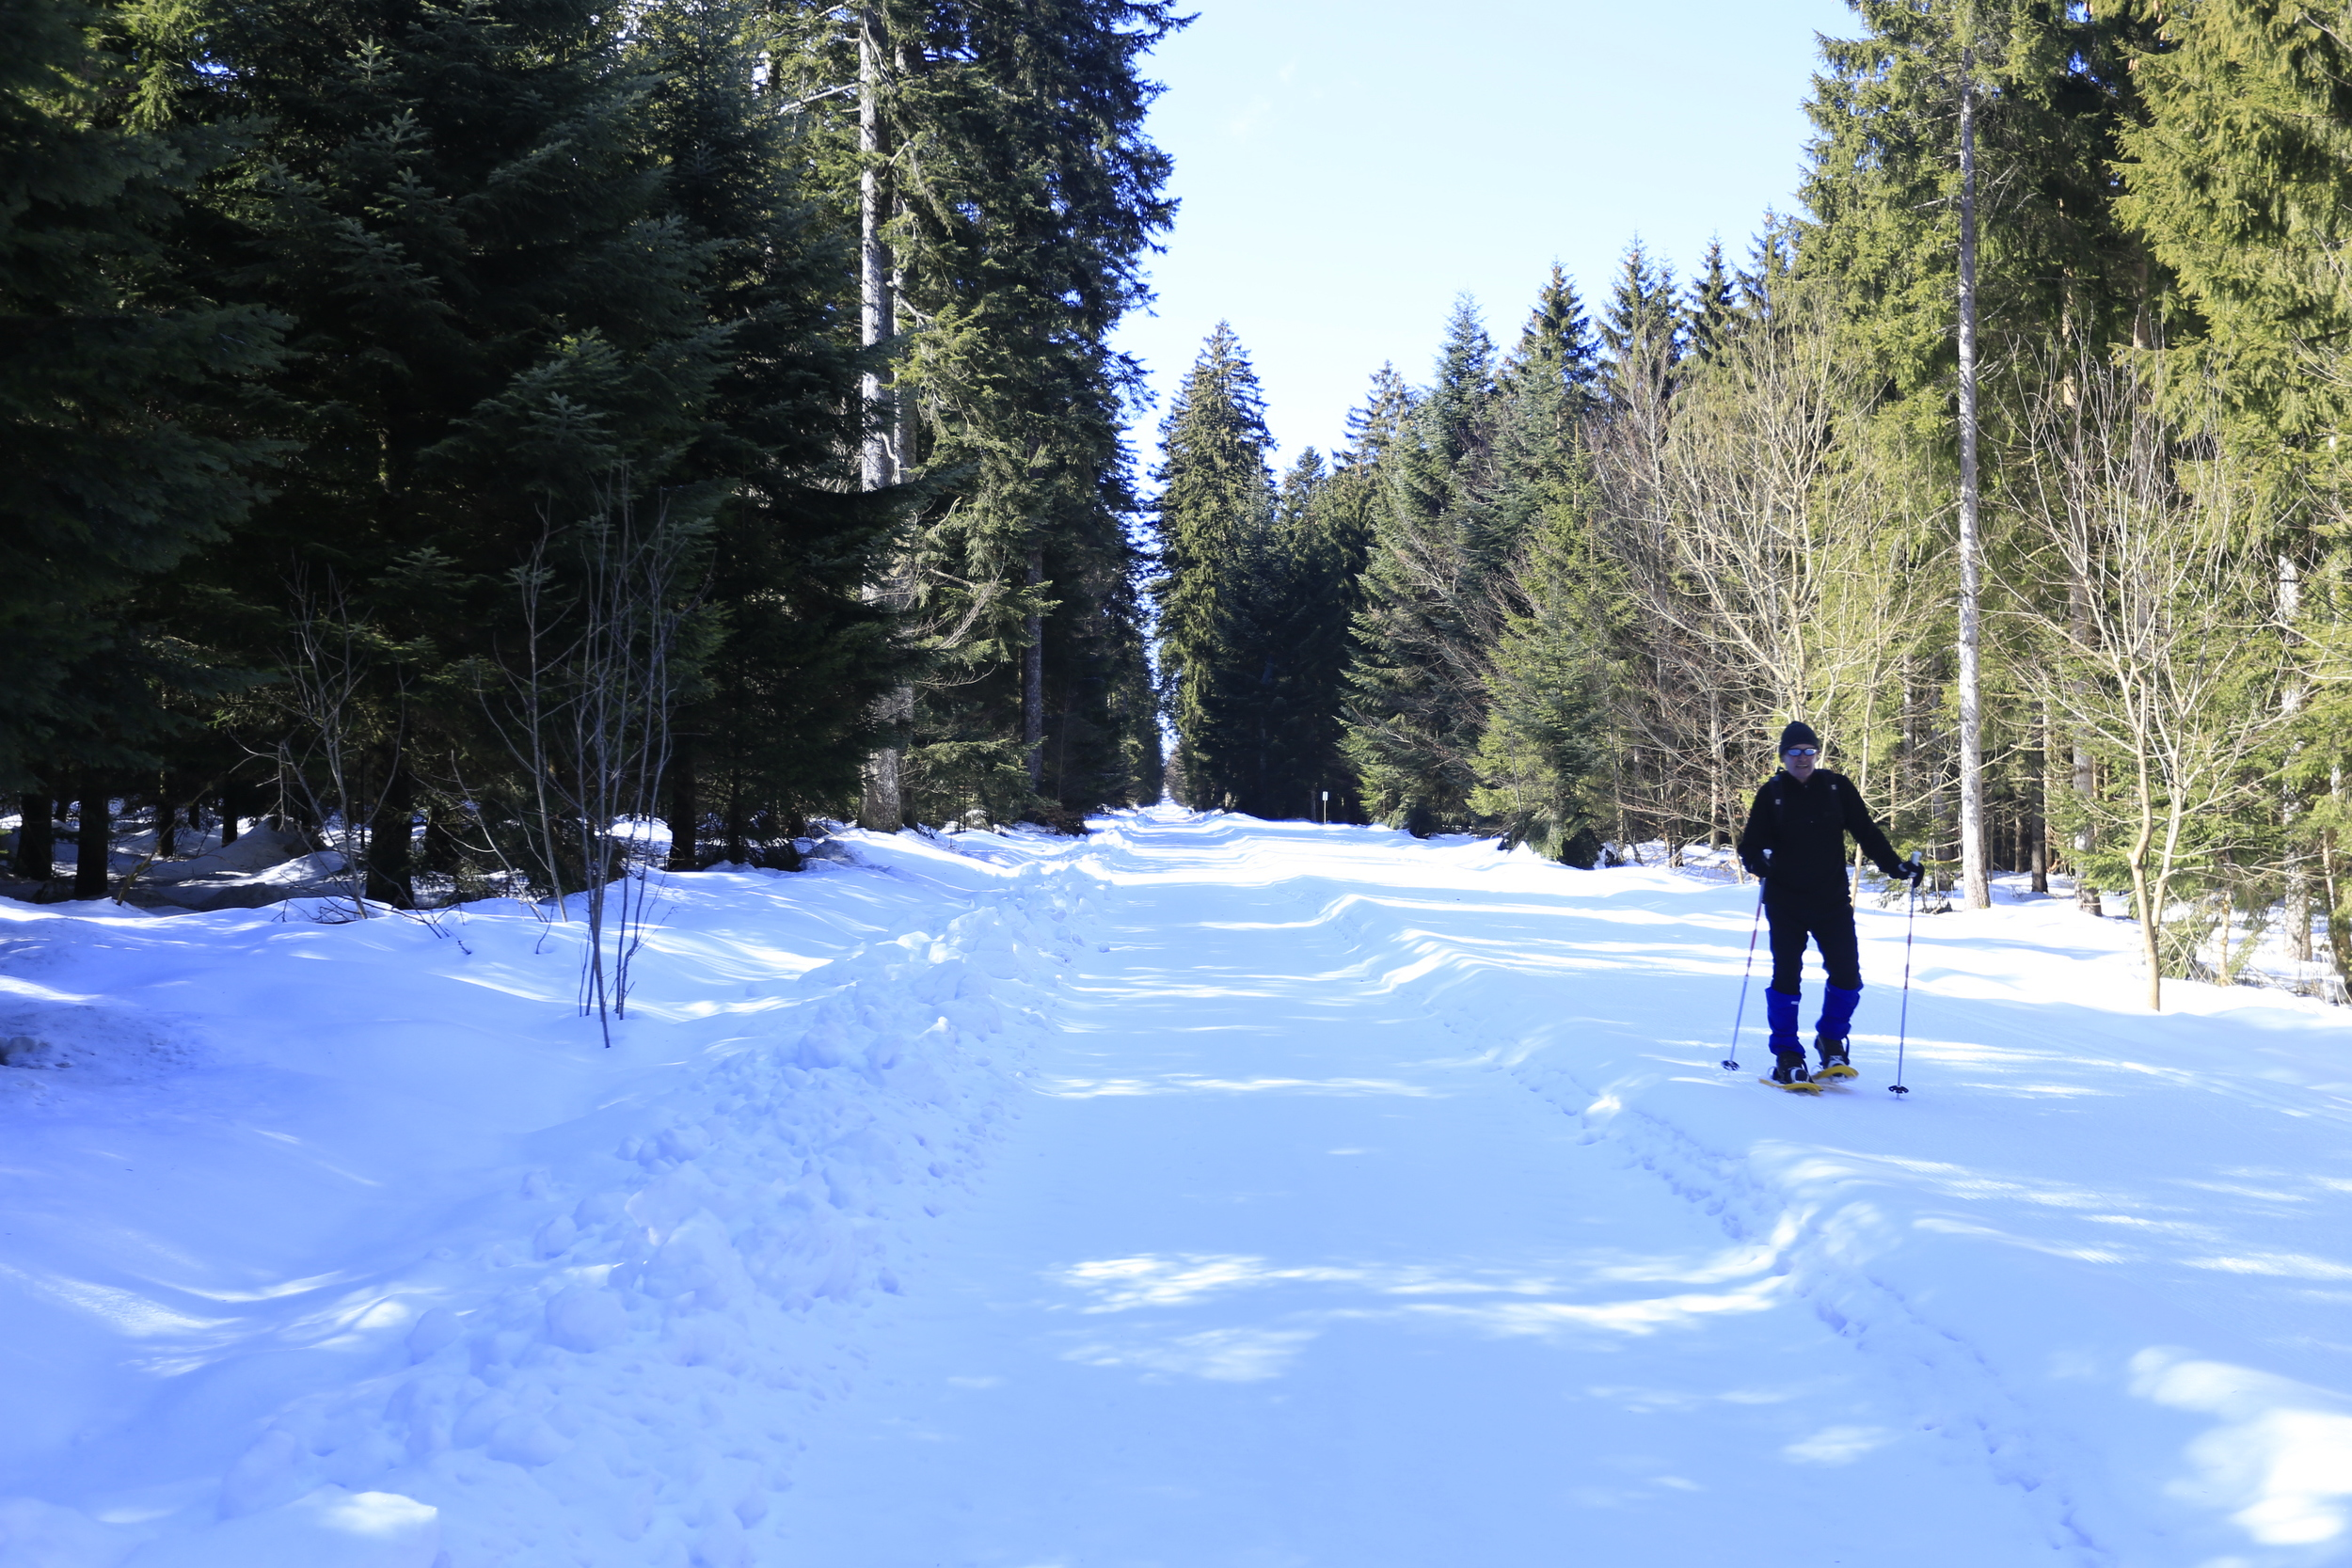 skiing, black forest, germany, bikepacking, cycle touring, bicycle touring apocalypse, cycling blog, blog, reviews, cycle gear, surly, surly ecr, ecr, fat biking, singletrack, adventure, cycle, ski resort germany